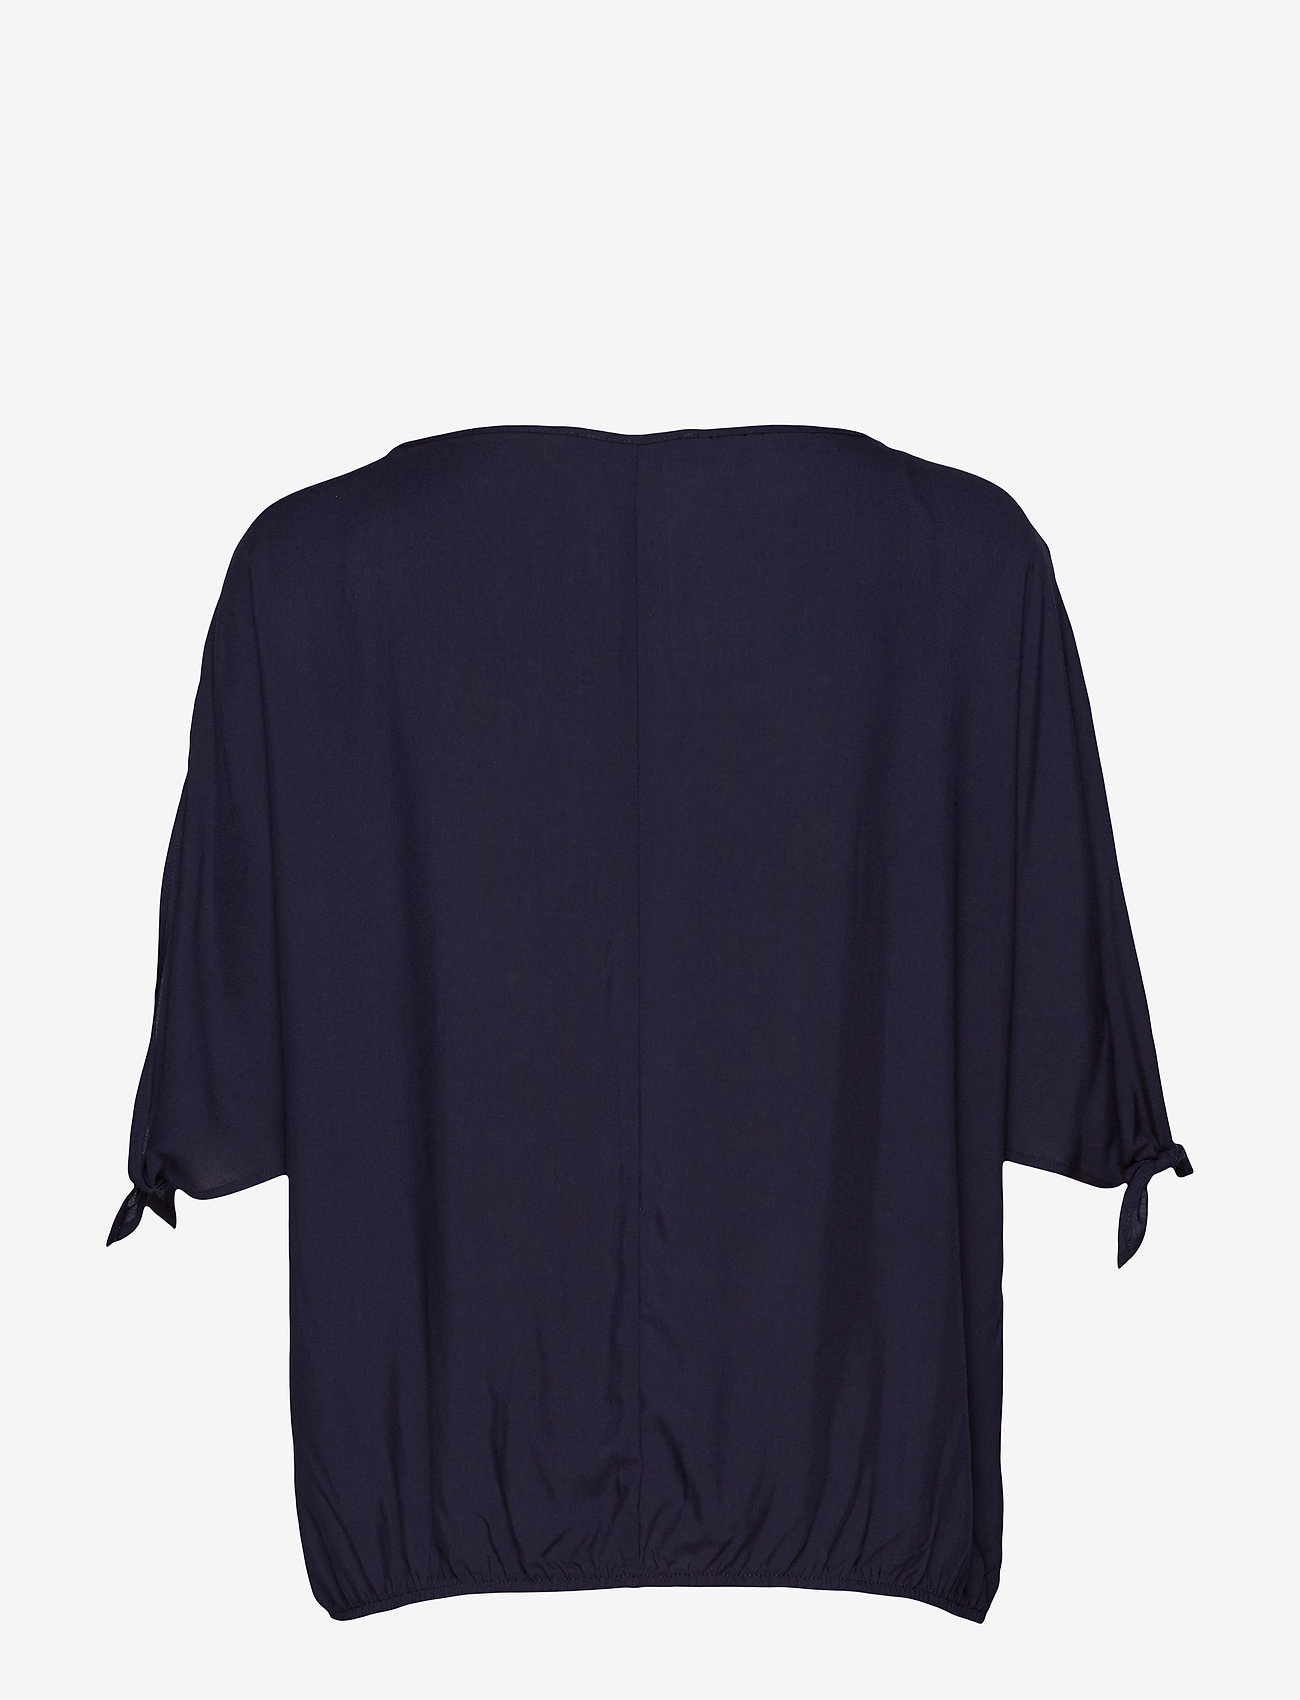 Blouse Short 1/2 Sleeve (Dark Sky) (339.60 kr) - Betty Barclay